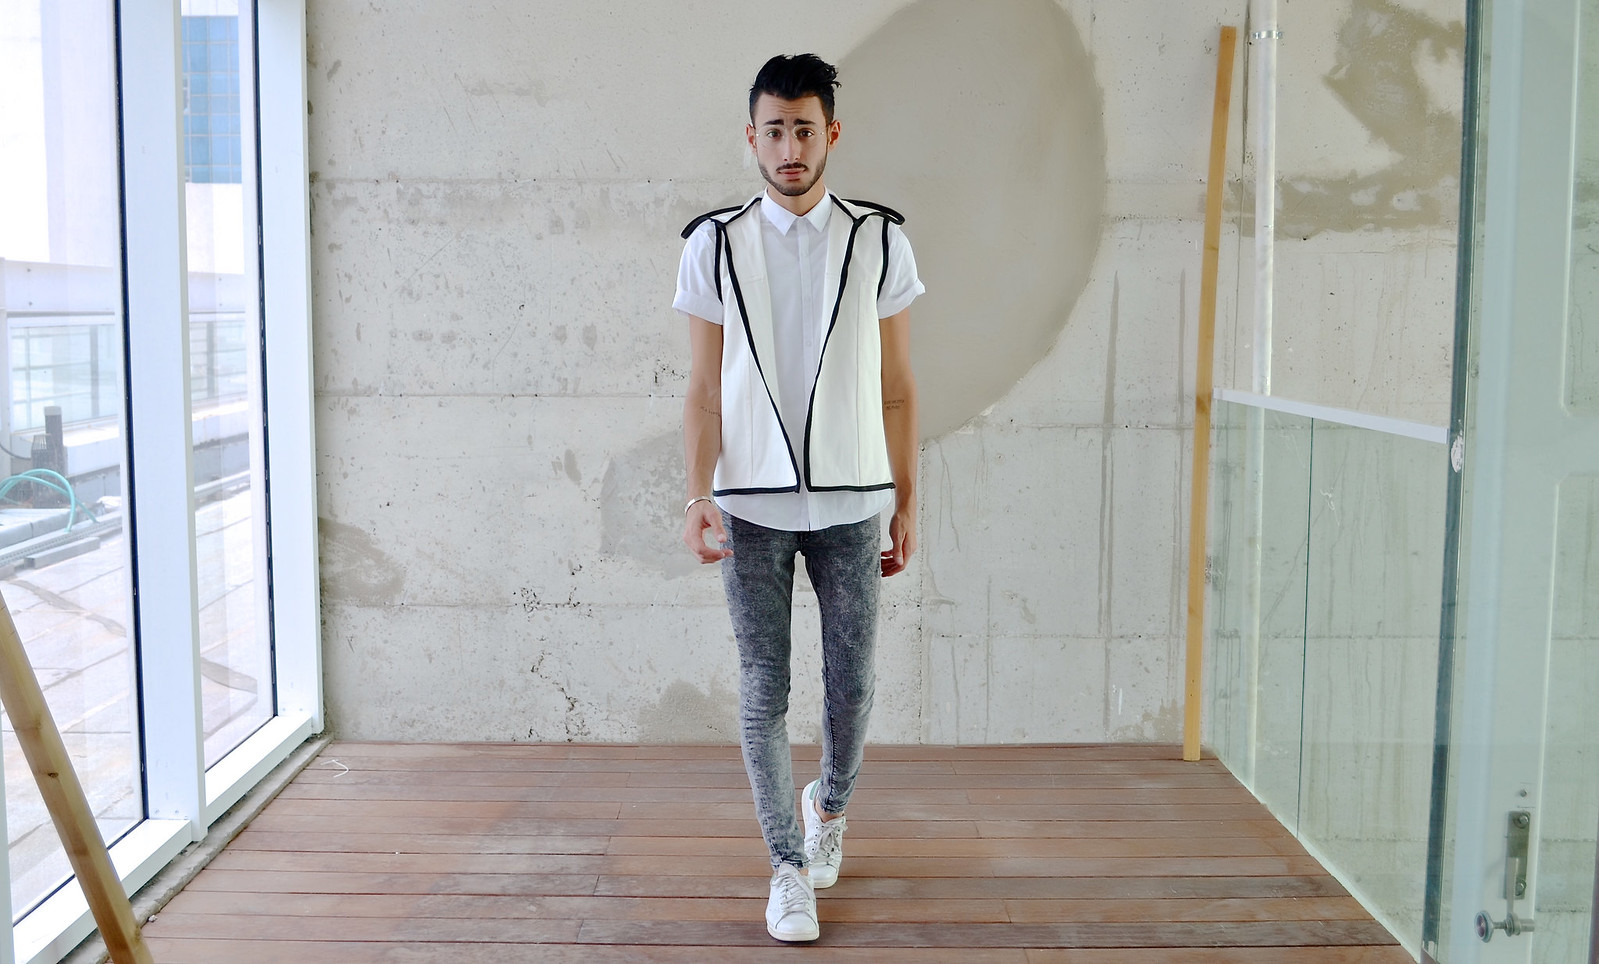 FUTURISTIC VEST – BY ANDY